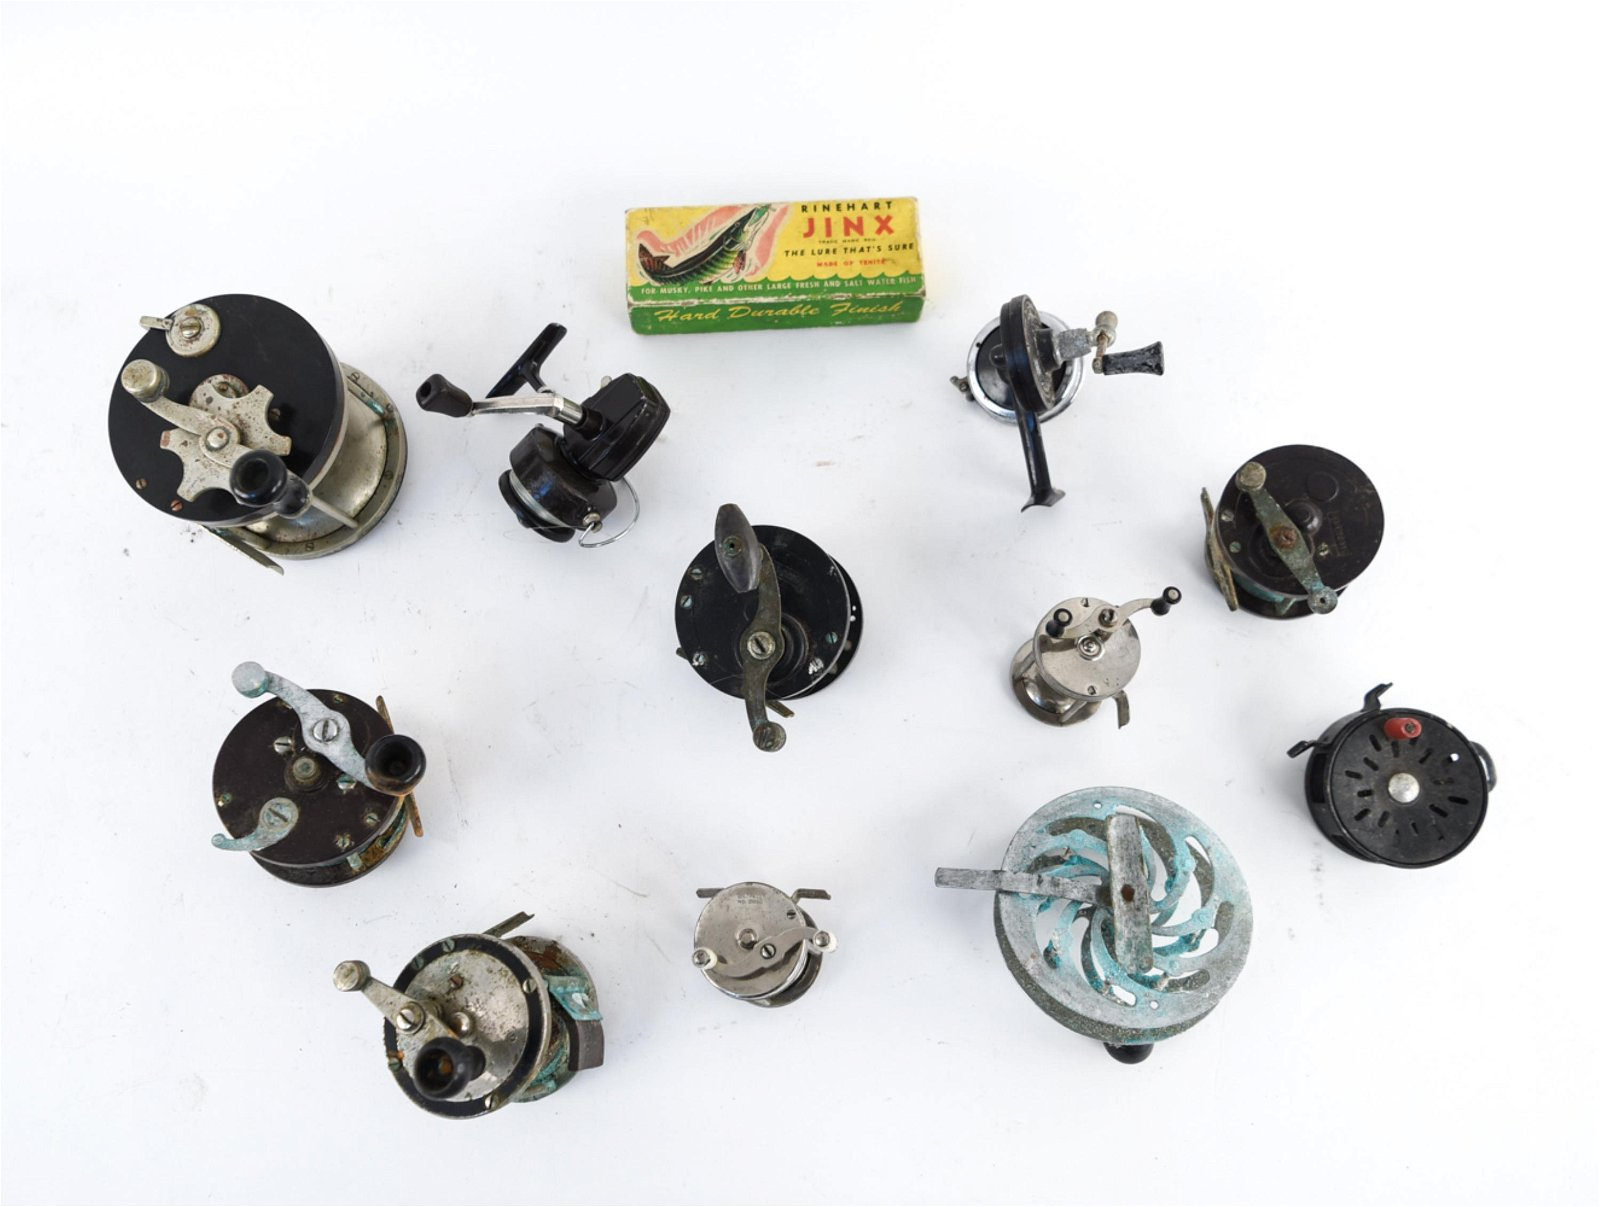 GROUPING OF VINTAGE FISHING REELS